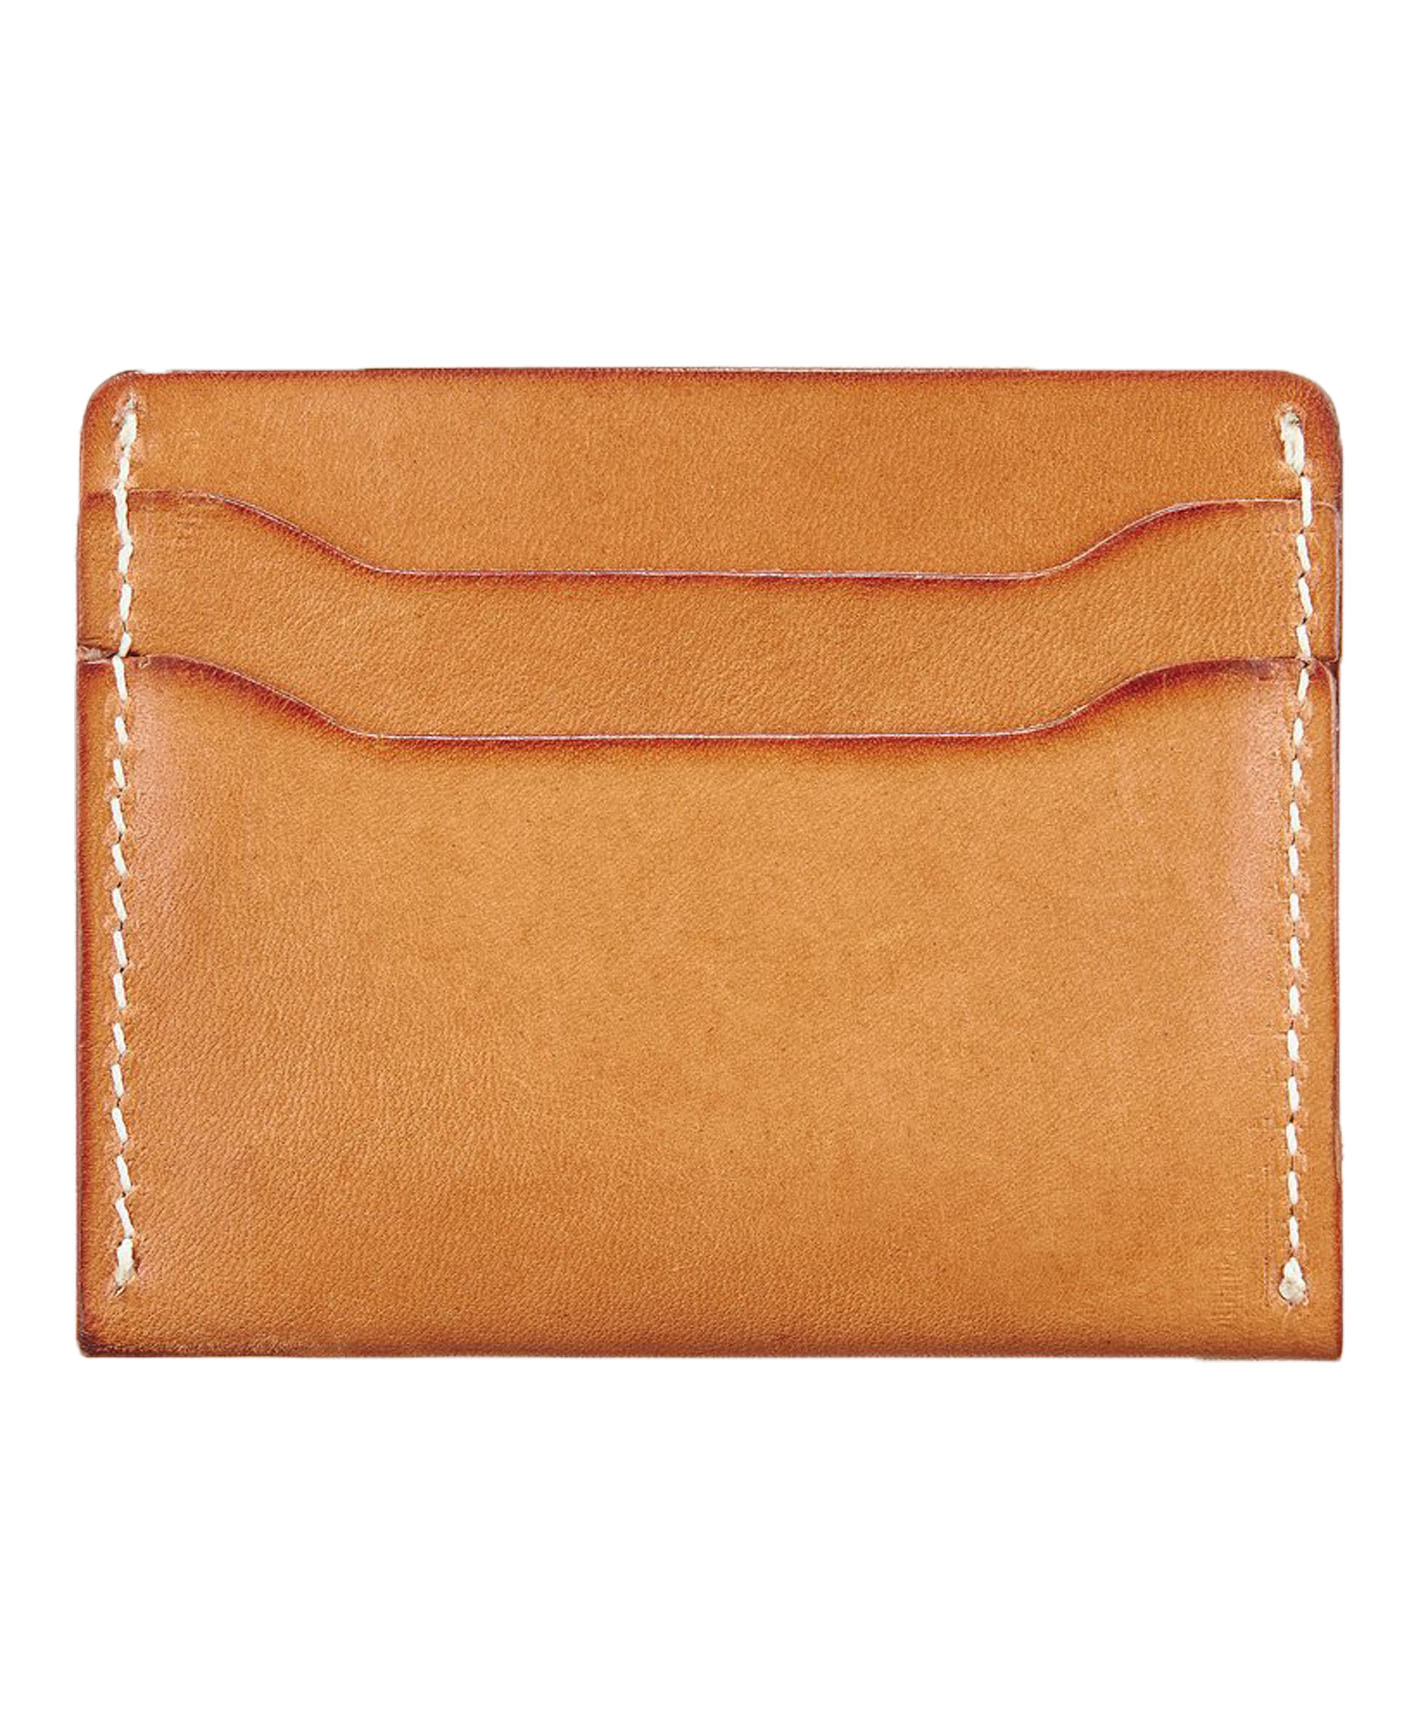 Todd Snyder leather wallet